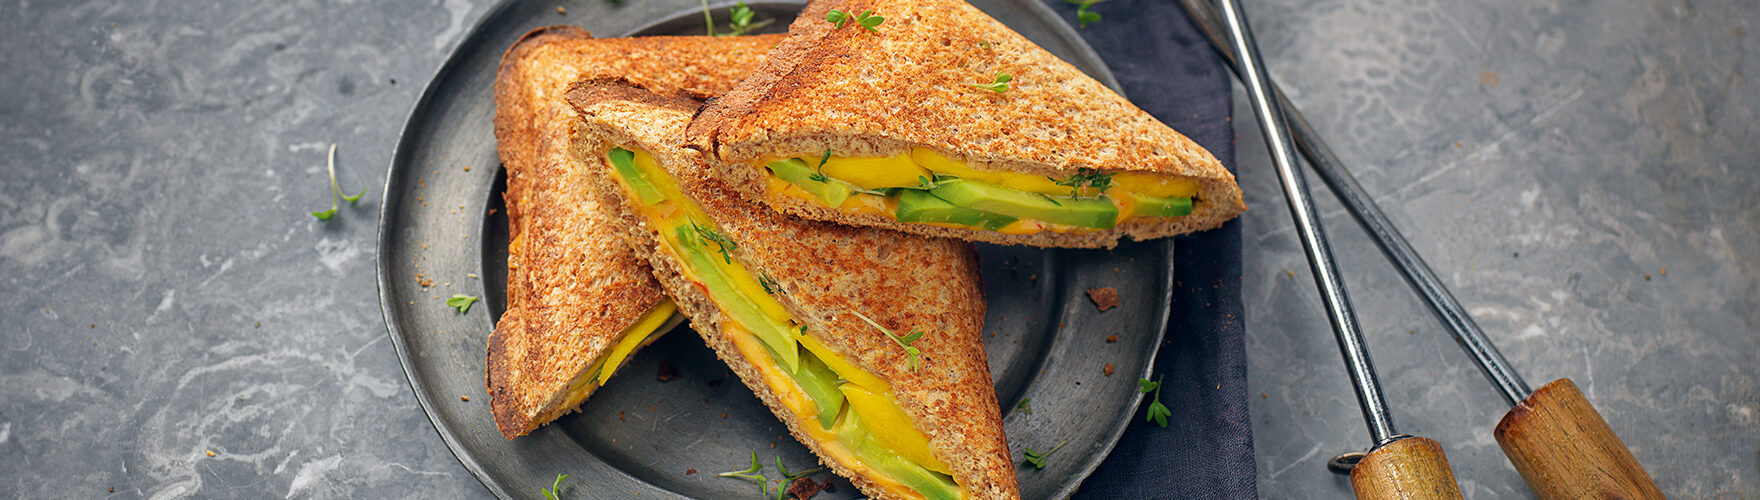 Toastie with cheddar, avocado, mango, cress and sambal